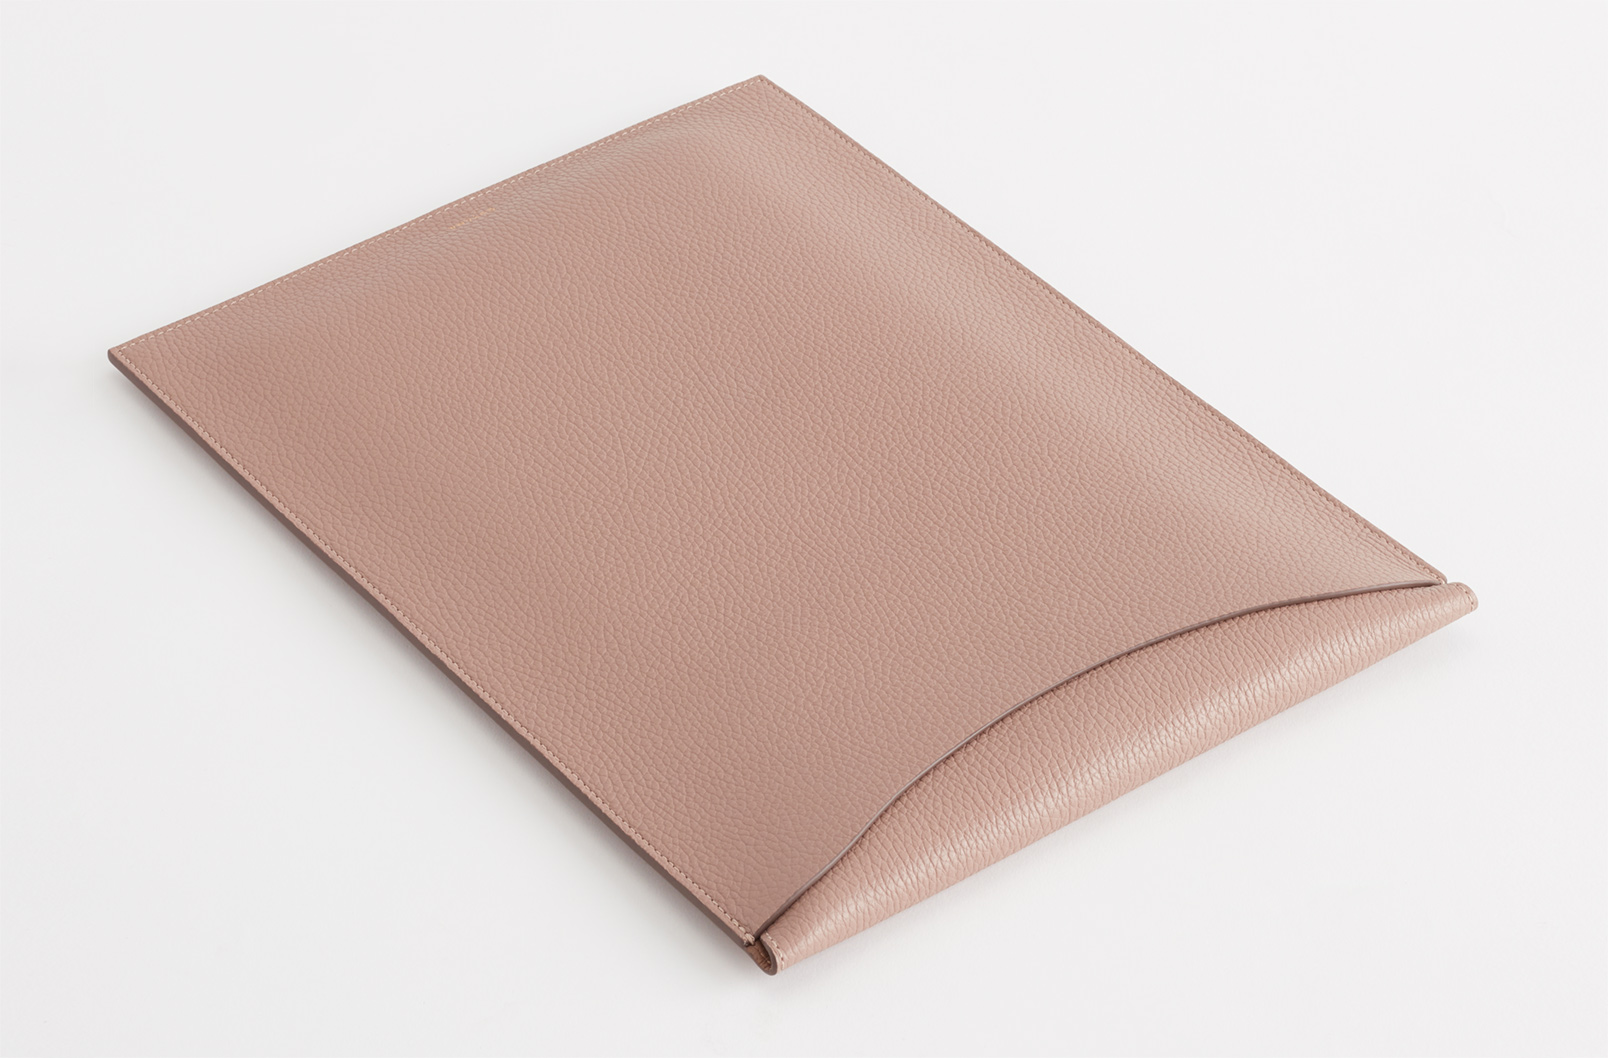 Convertible Leather Laptop Sleeve